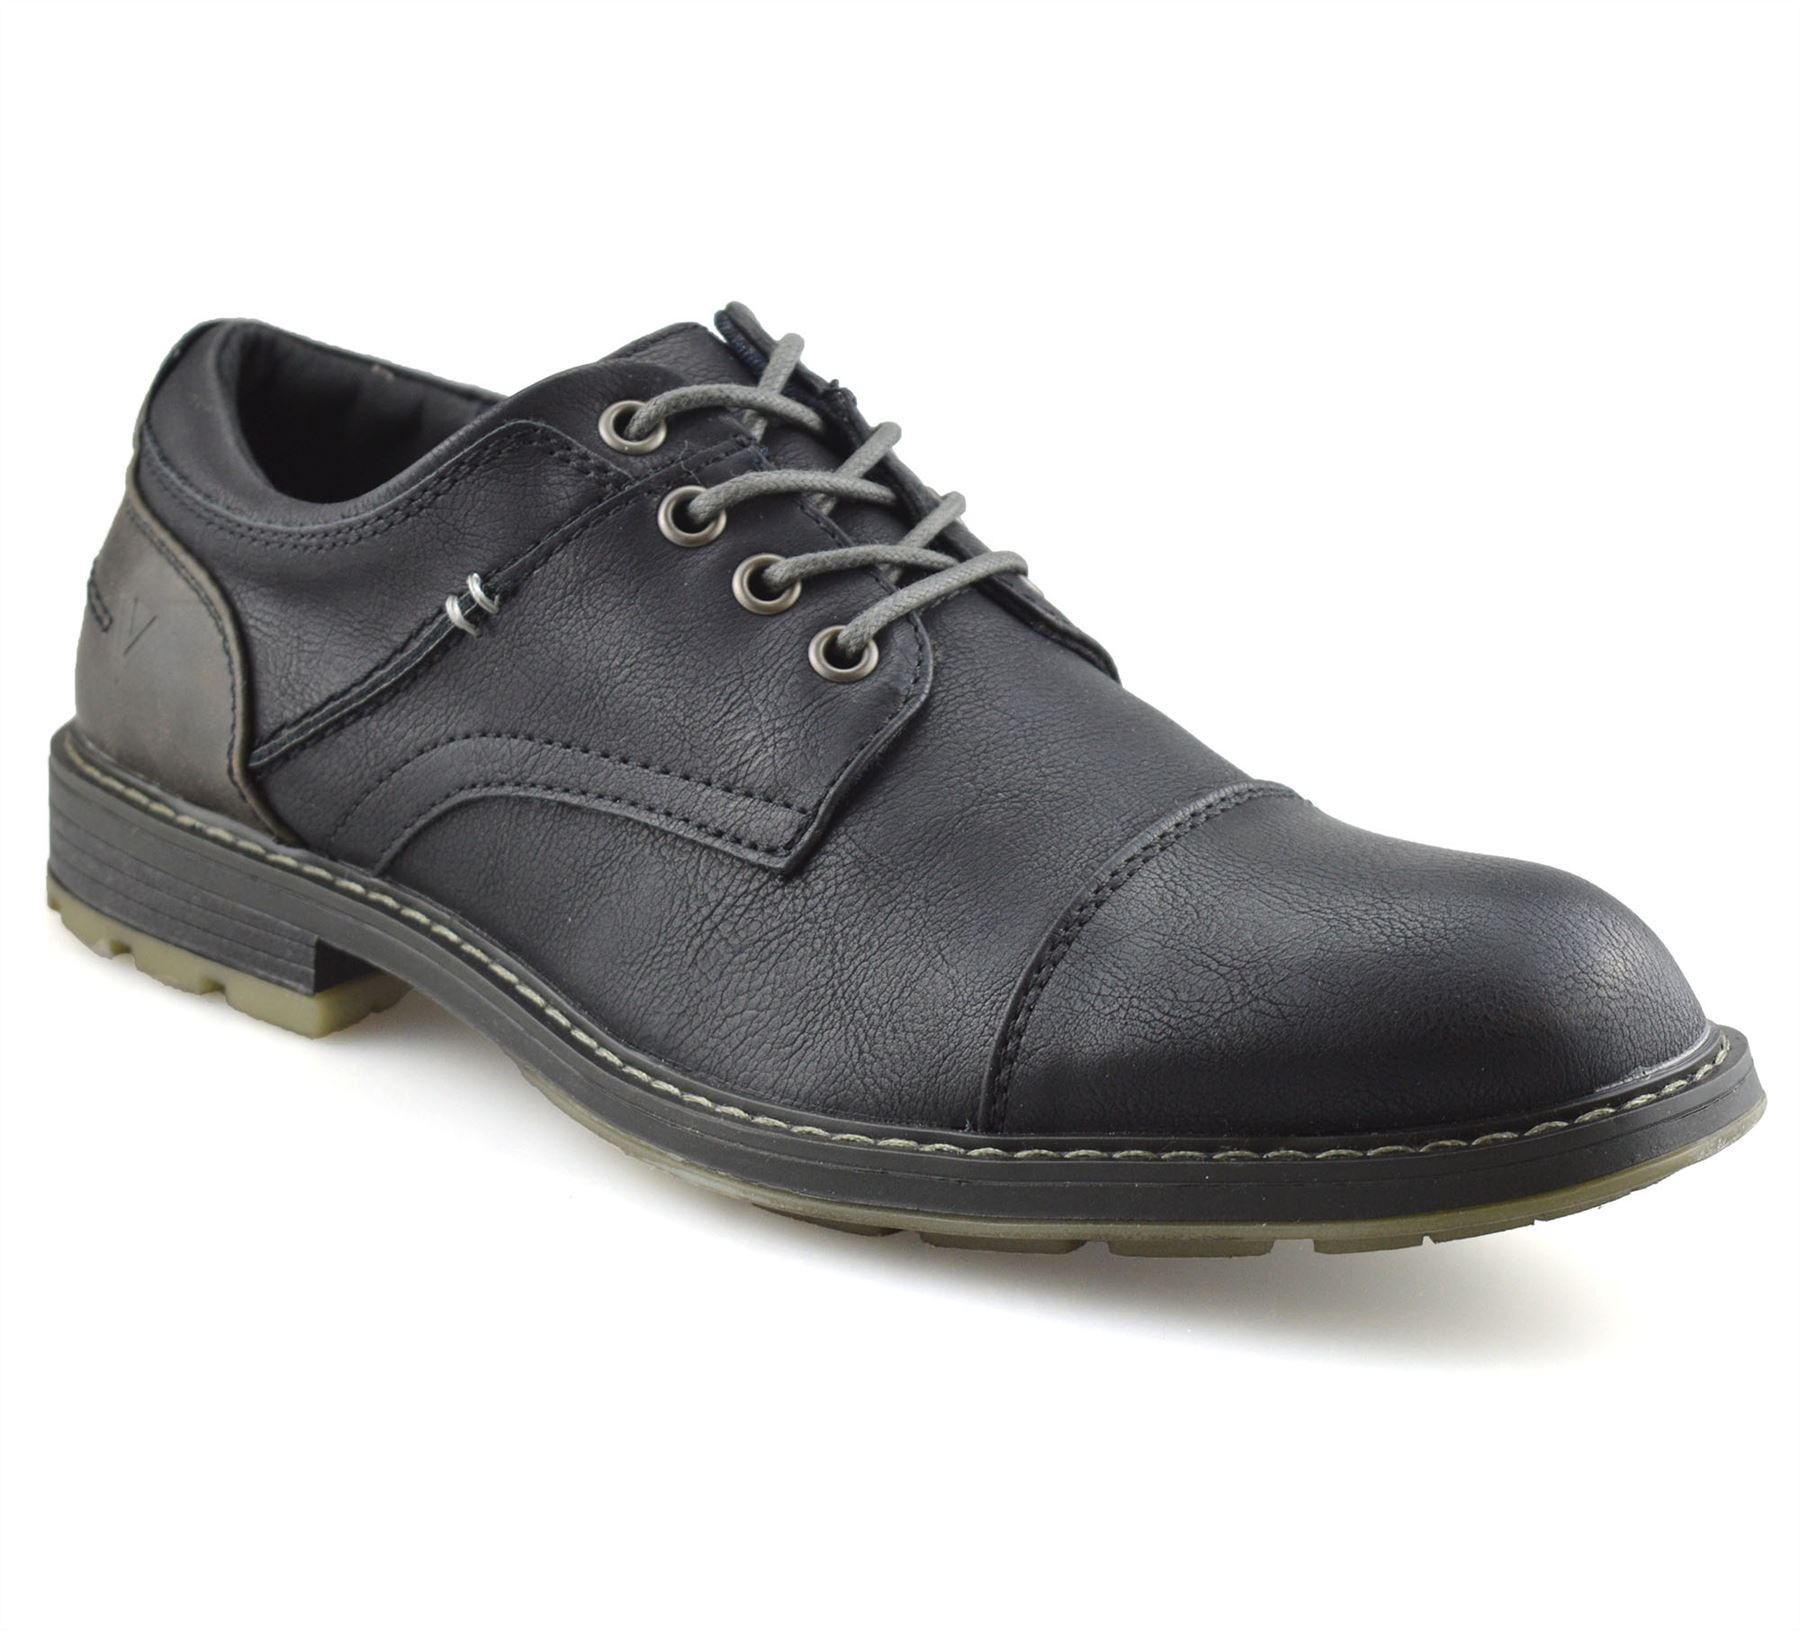 Mens-Smart-Casual-Comfort-Lace-Up-Work-Office-Formal-Derby-Toe-Cap-Shoes-Size thumbnail 8